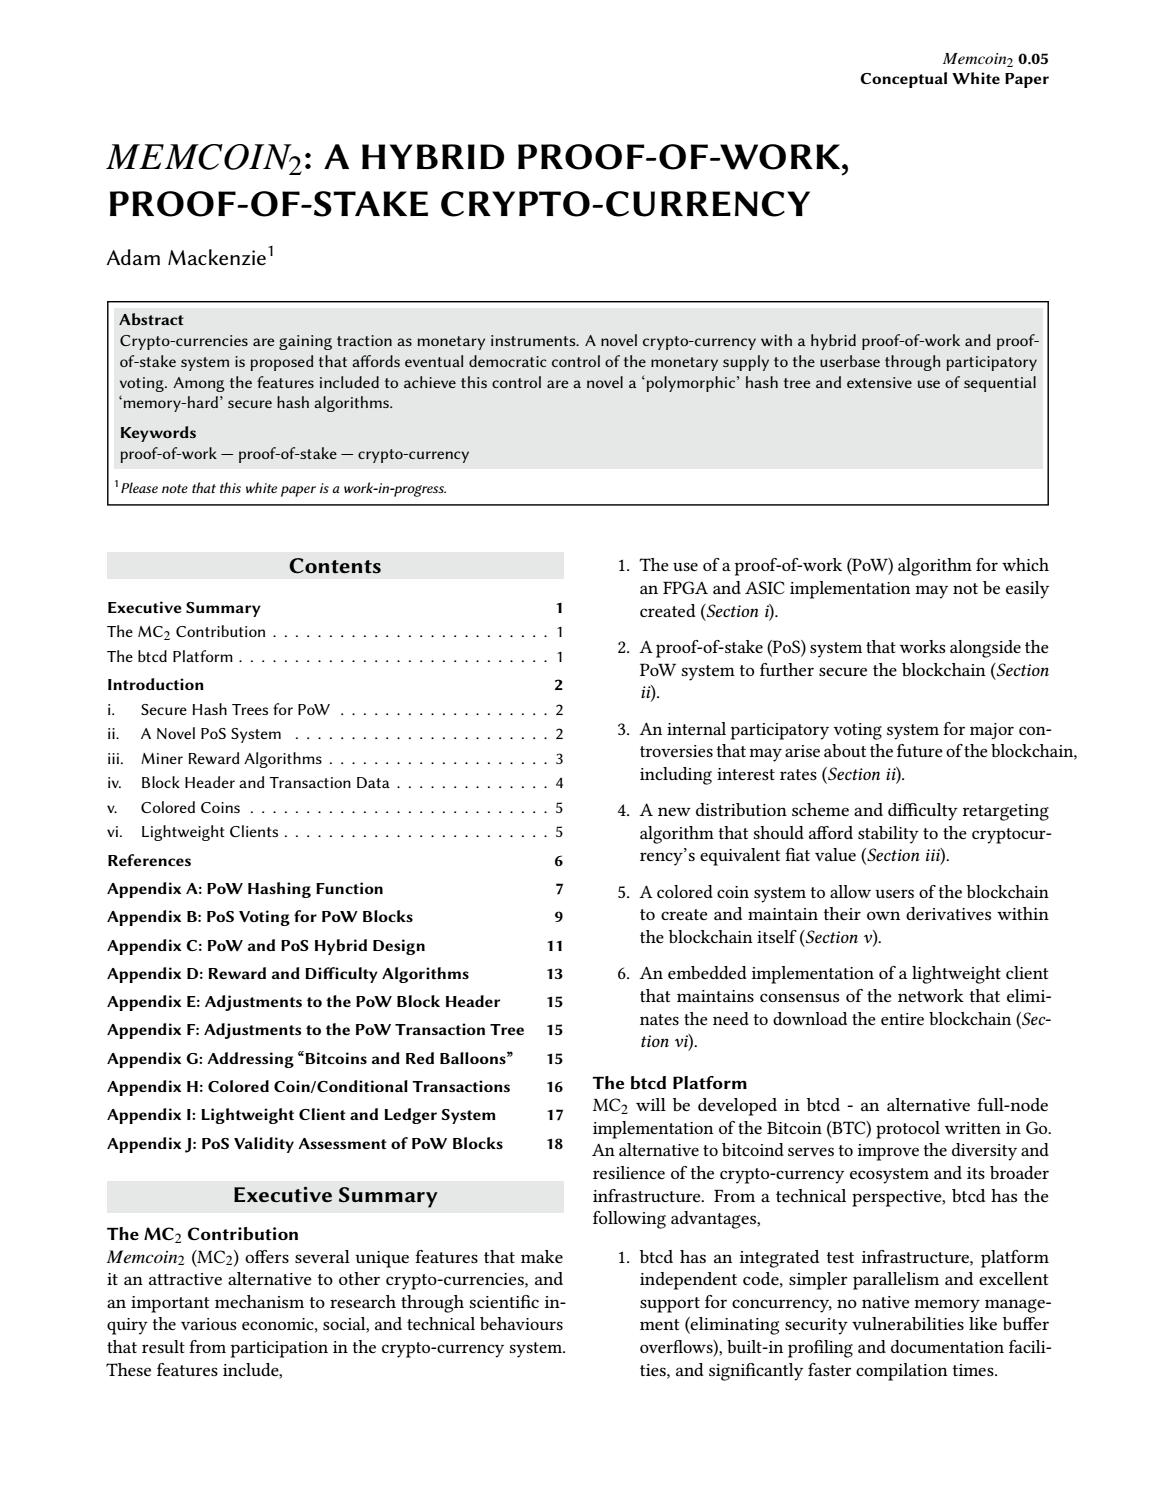 Proof of memory cryptocurrency